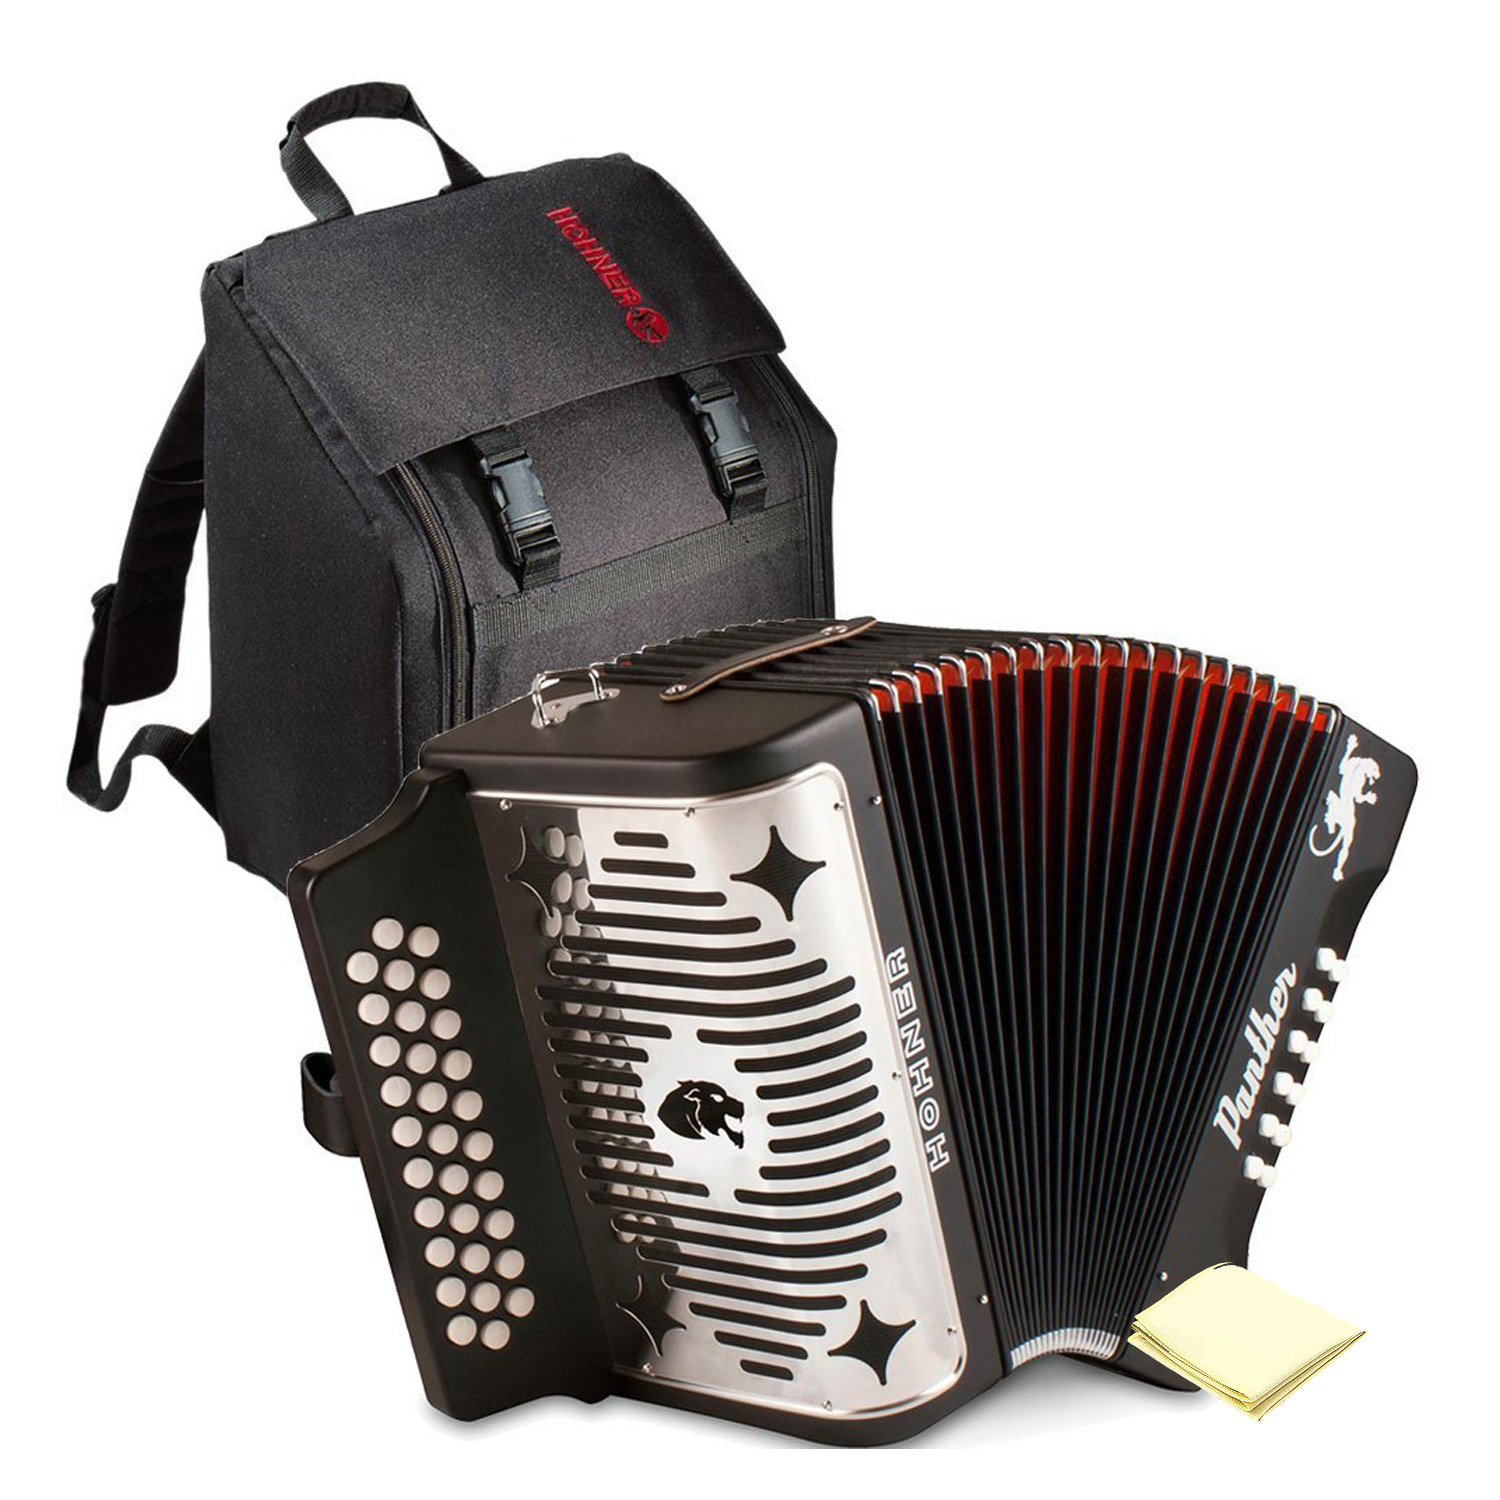 Hohner 3100GB Panther Diatonic Button Accordion in the Key of G in Black Finish with Gig Bag and Accordion Polishing Cloth